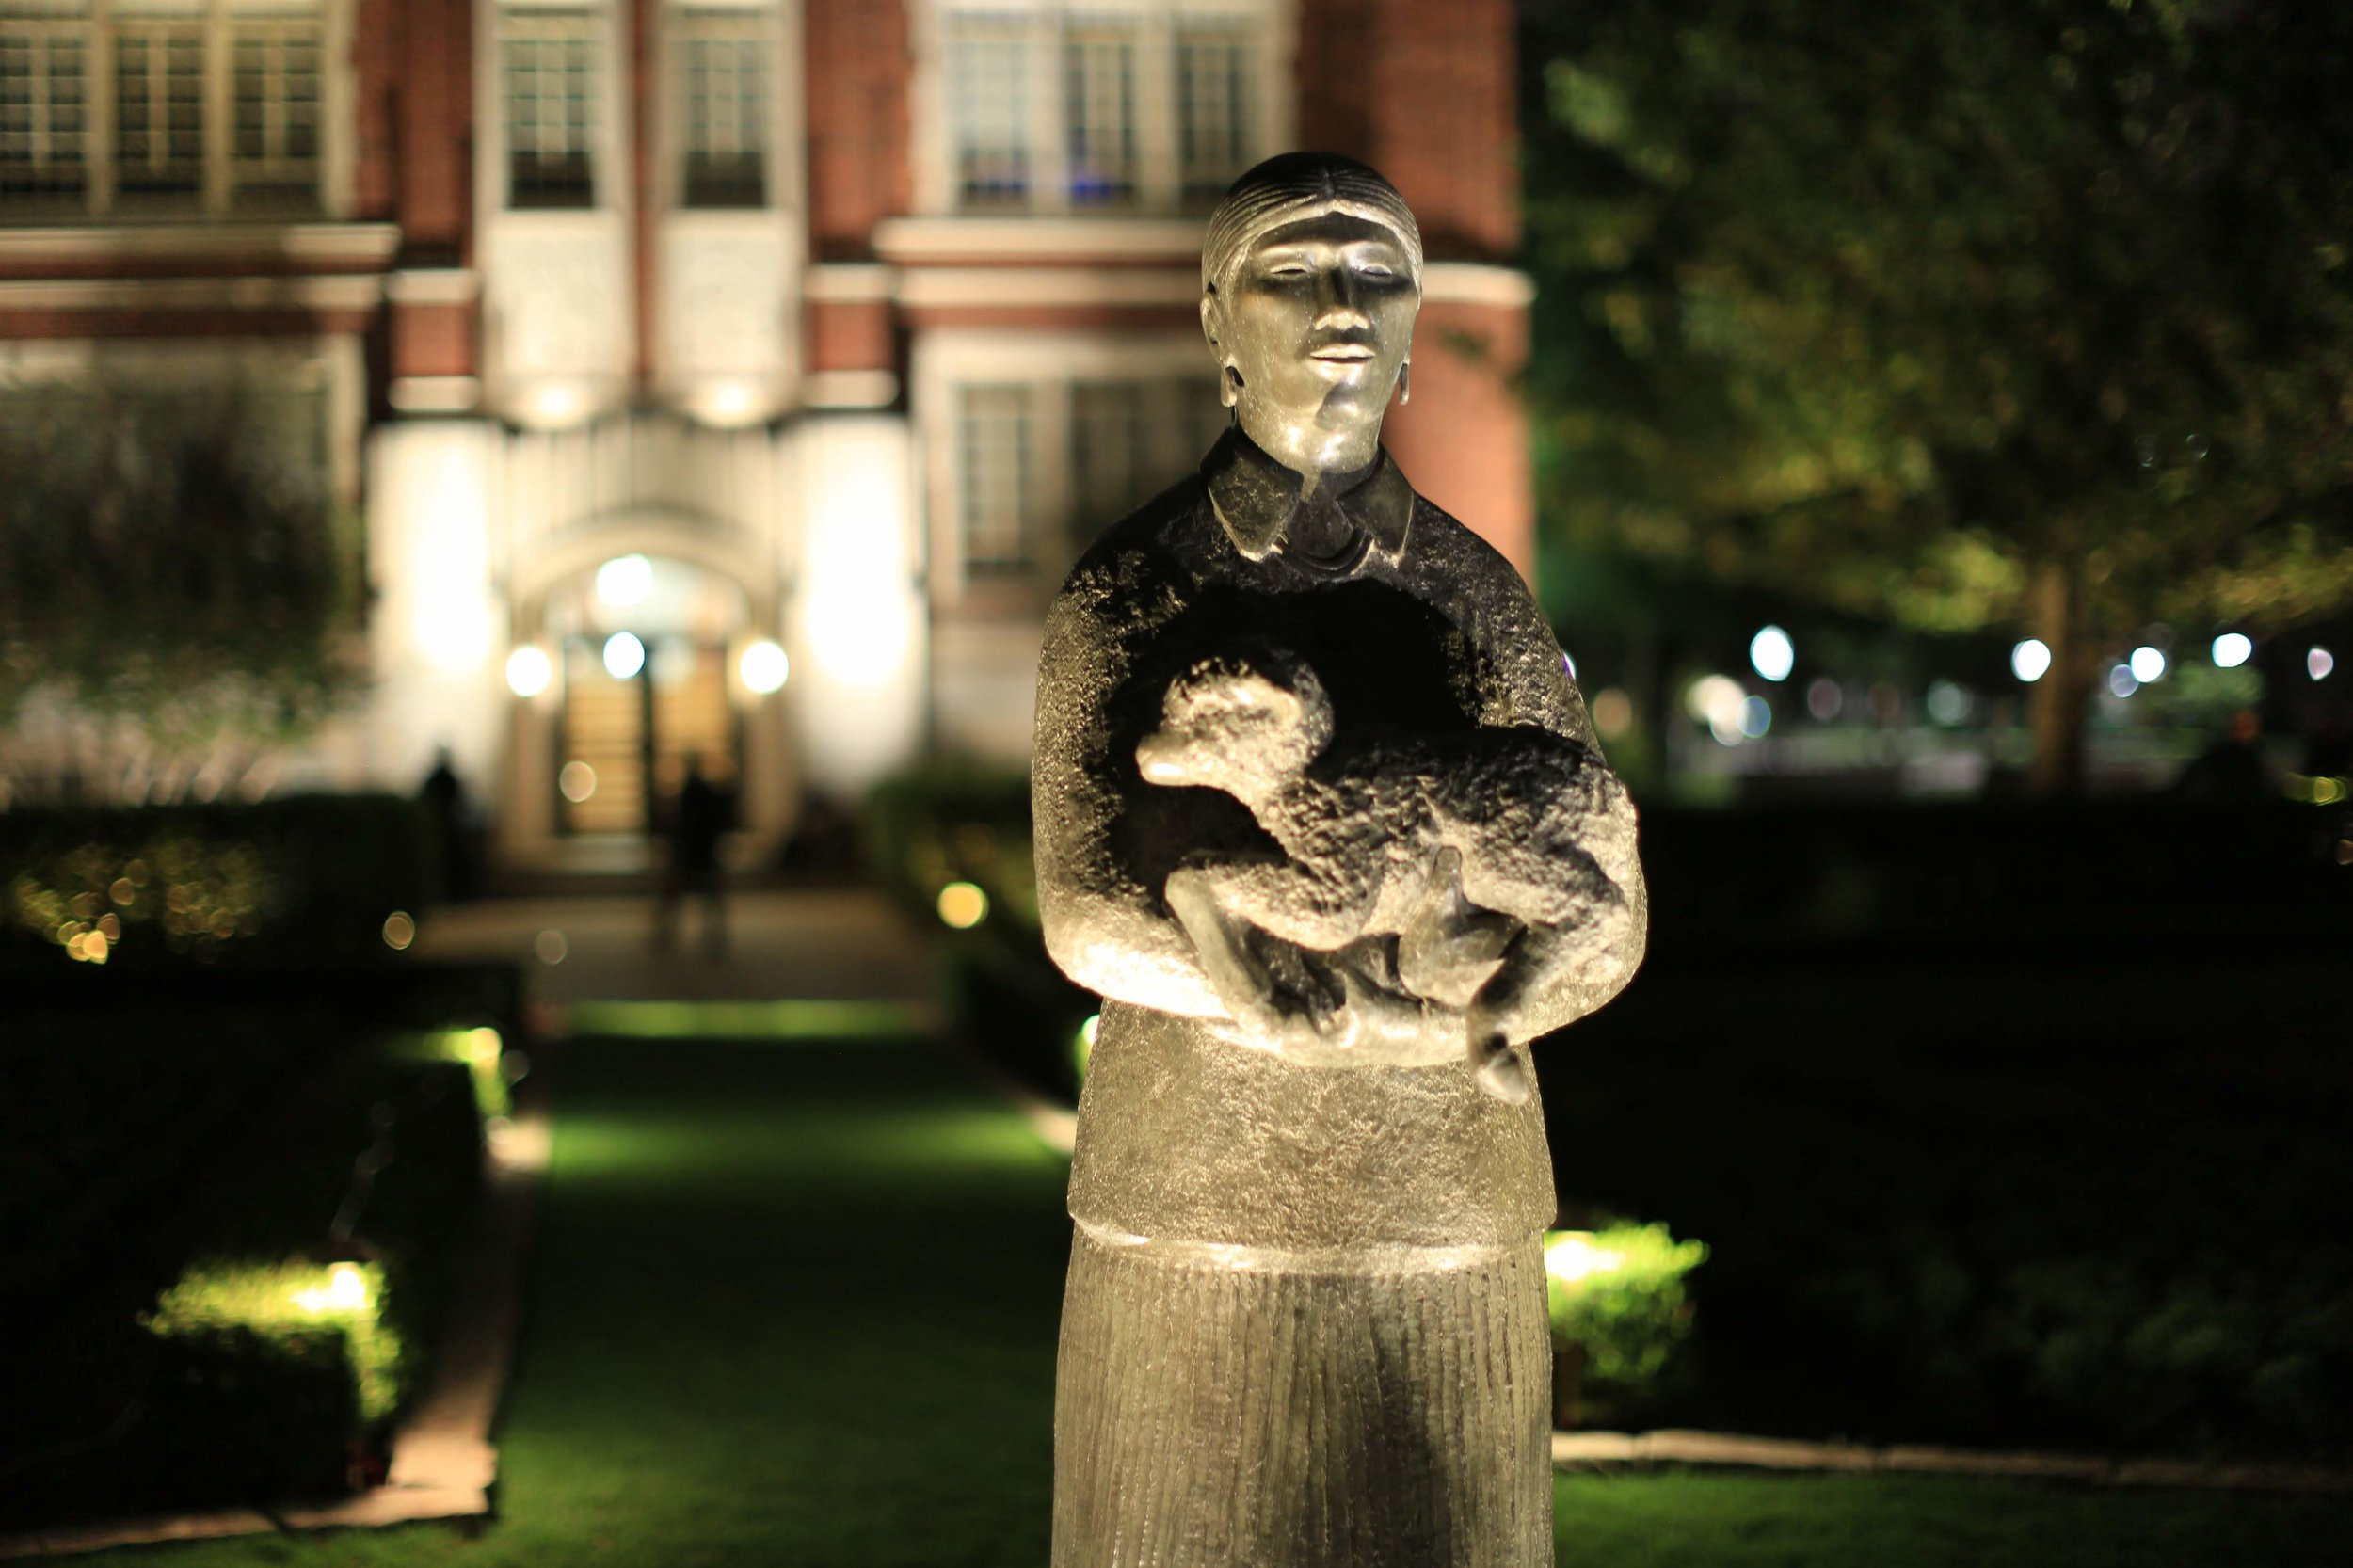 Helmerich Memorial Garden, Shepherdess Statue, University of Oklahoma, Student Work, Intensive Course 2018 - LIT Award, Landscape Lighting Category, 2018